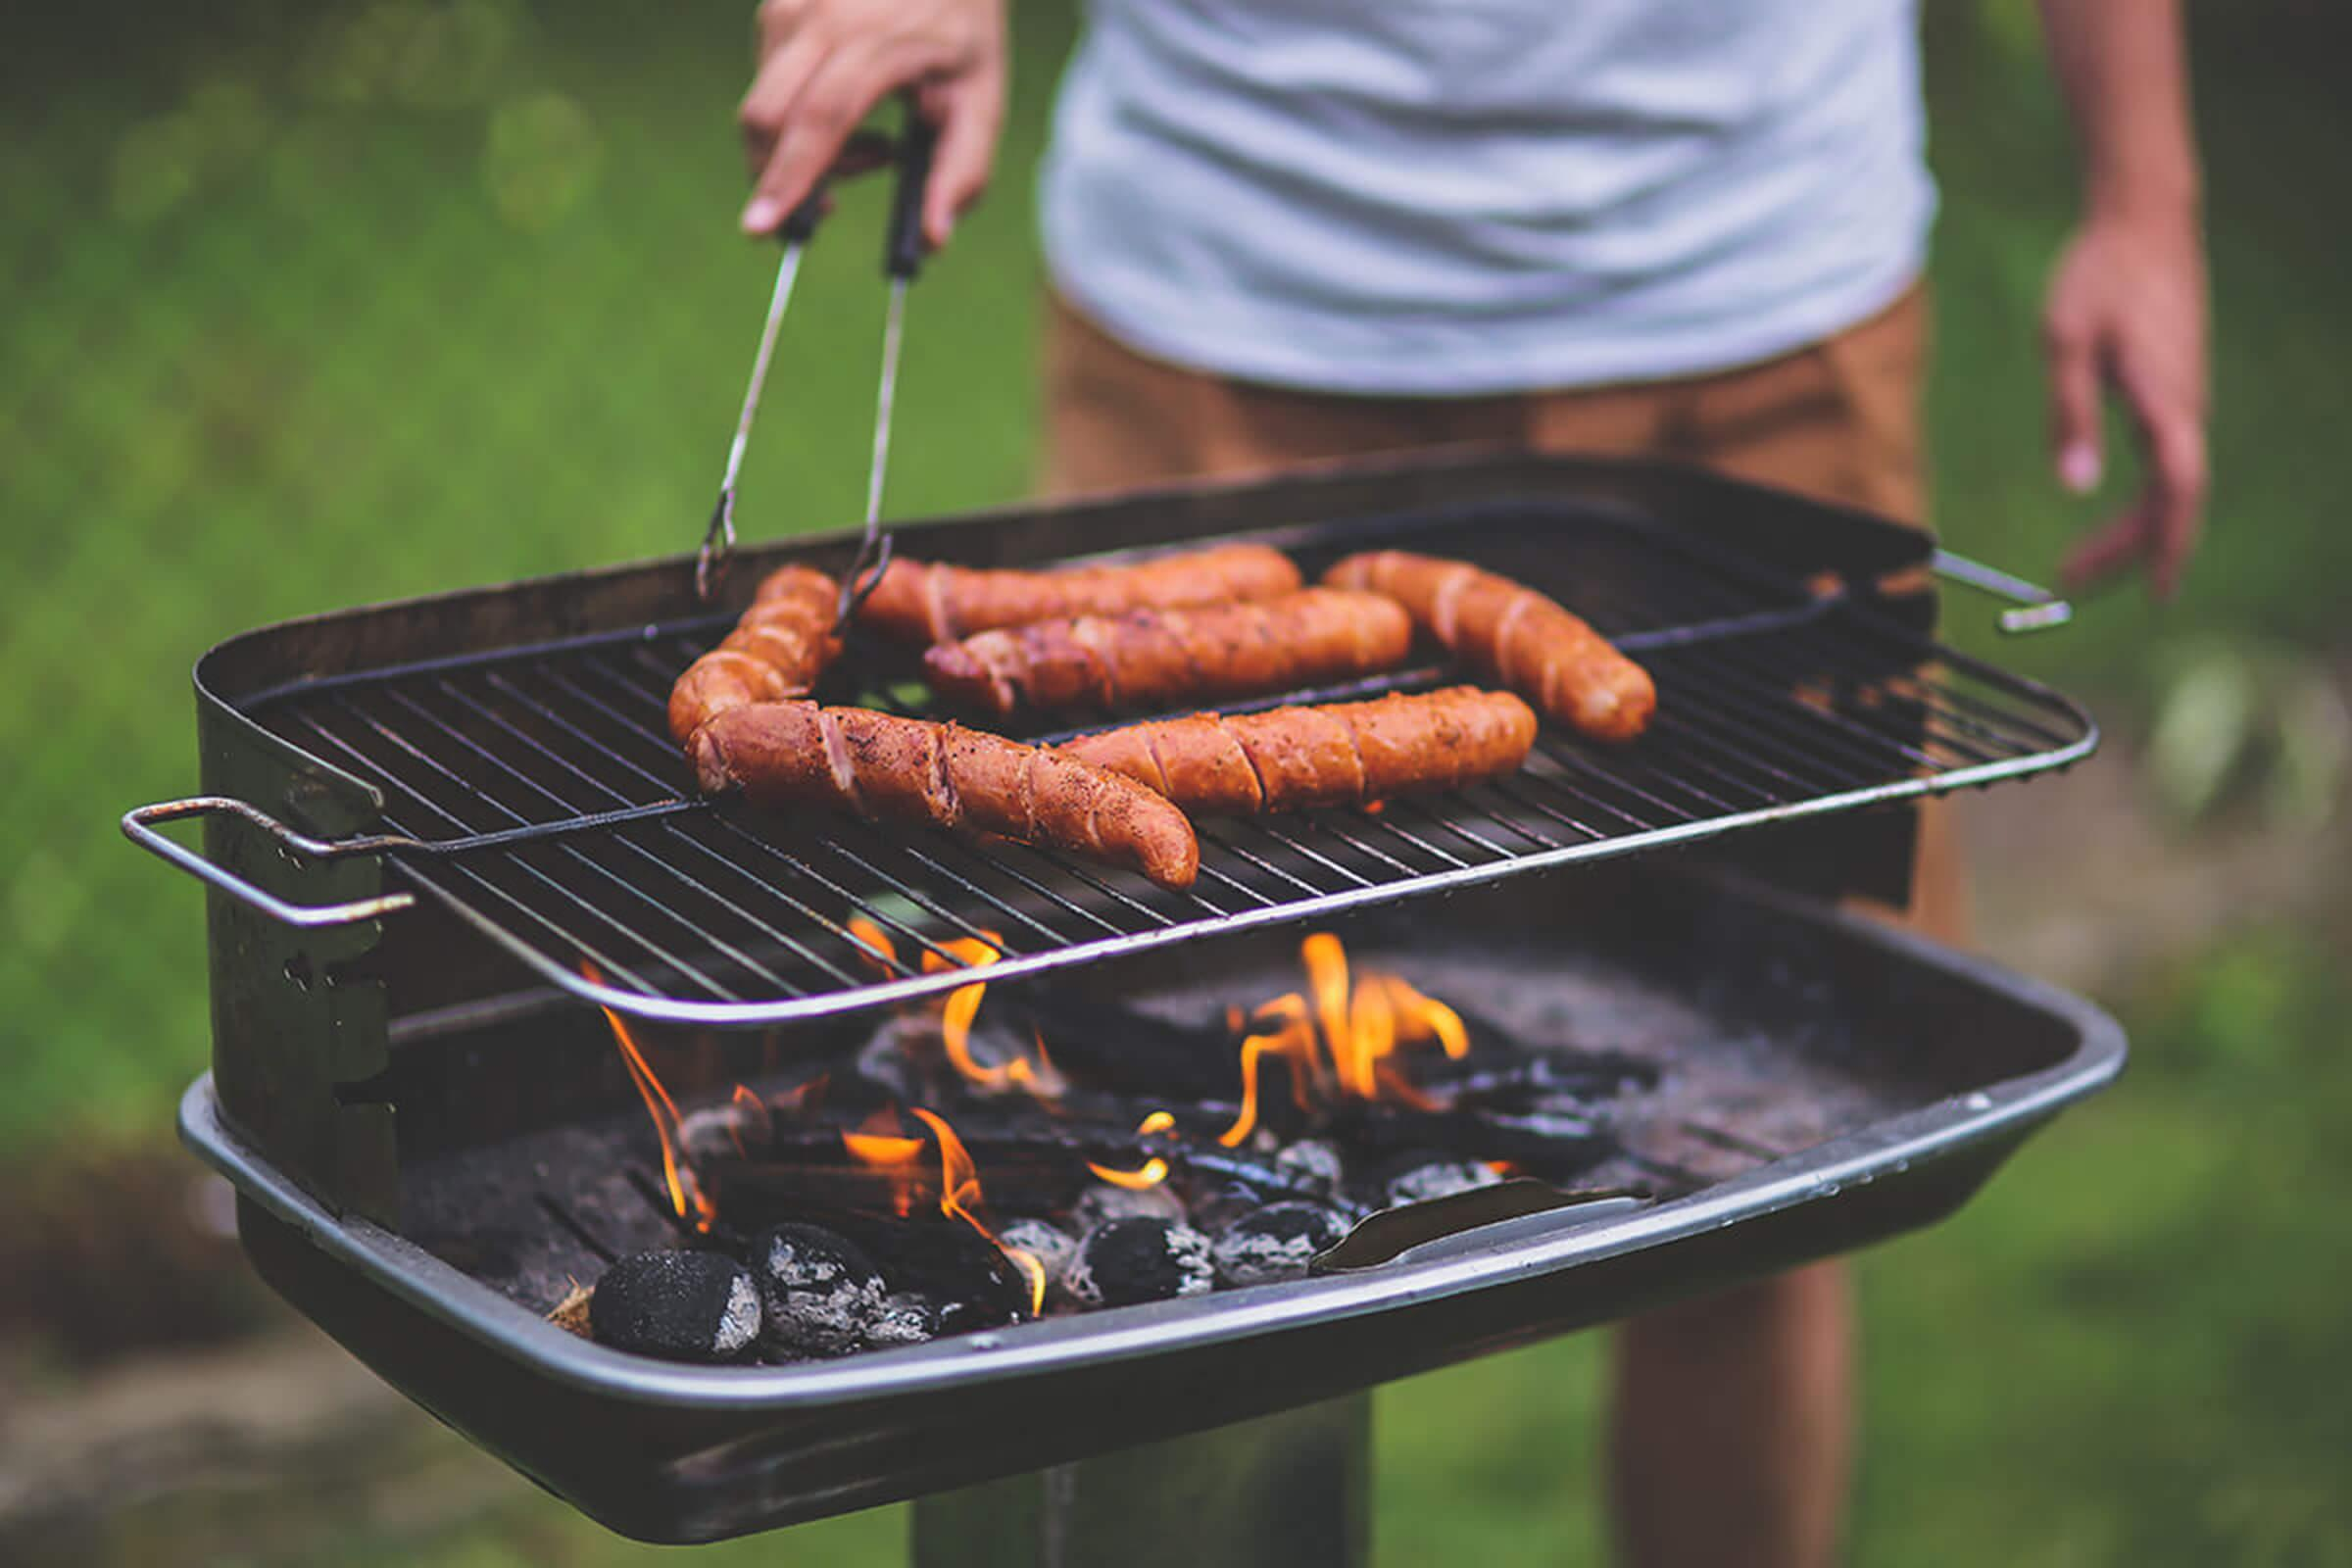 a person cooking food on a grill